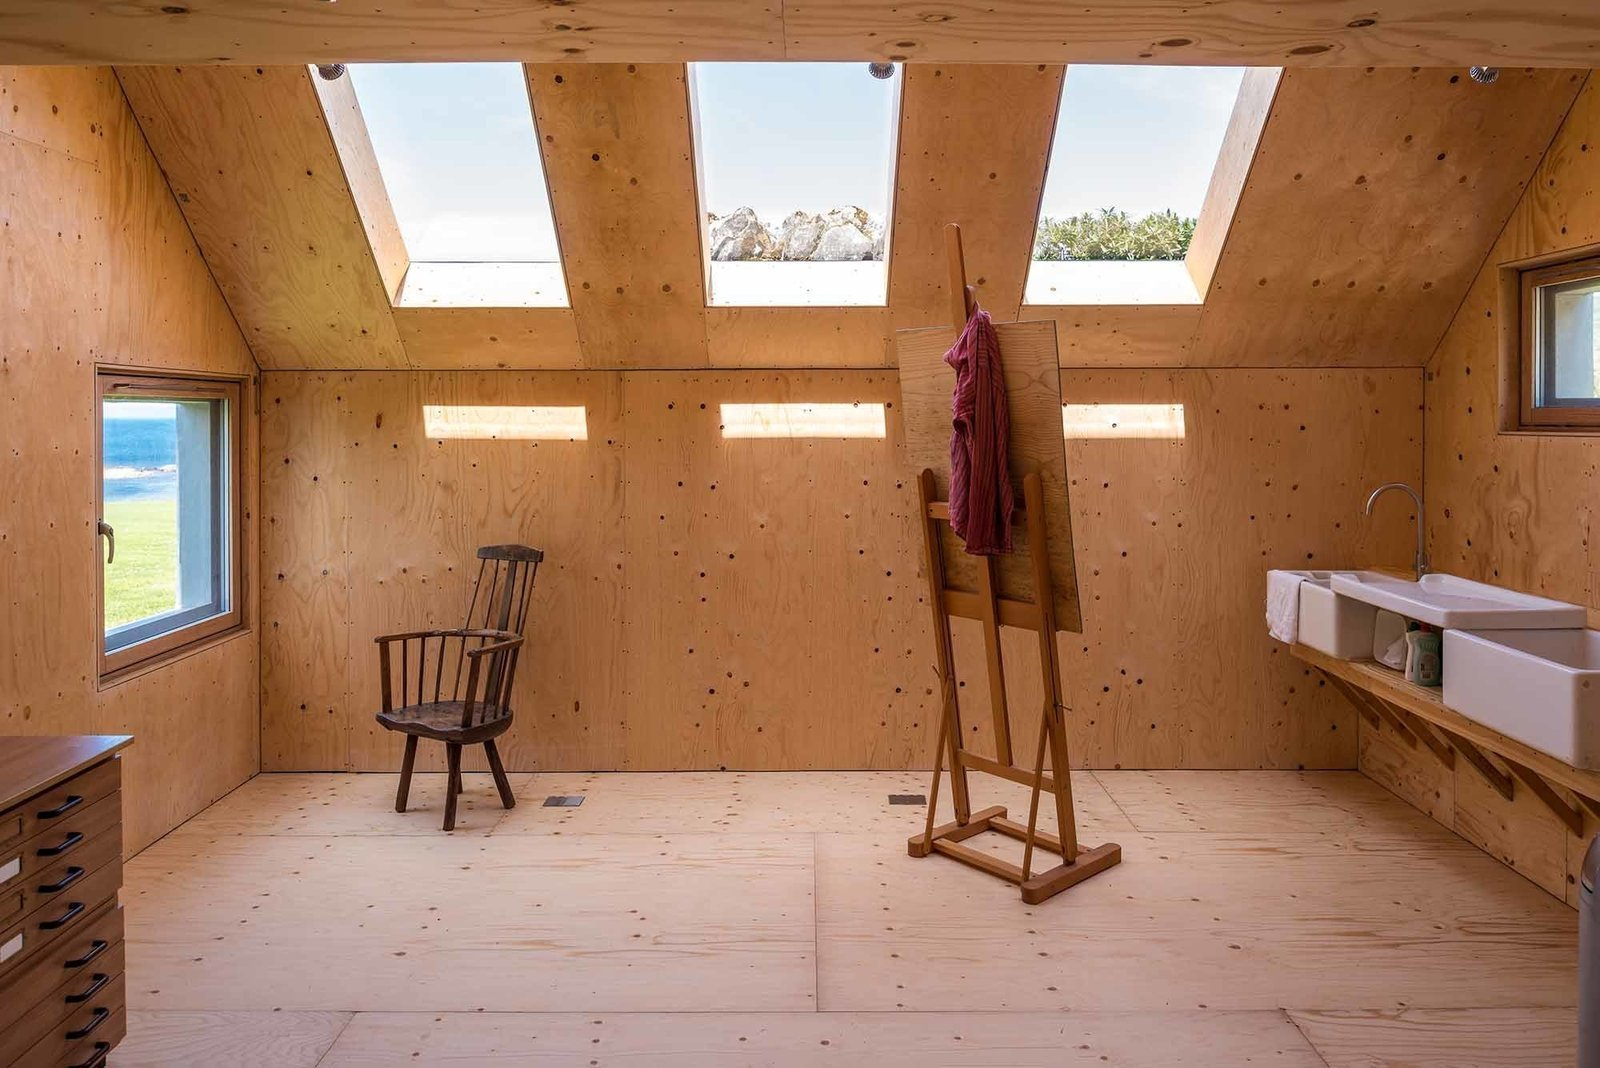 Shed & Studio, Living Room, and Living Space Interior of Midden Studio in Scotland.  Shed & Studio Living Room Photos from 10 Prefabricated or Modular Structures That Use Plywood in Creative Ways